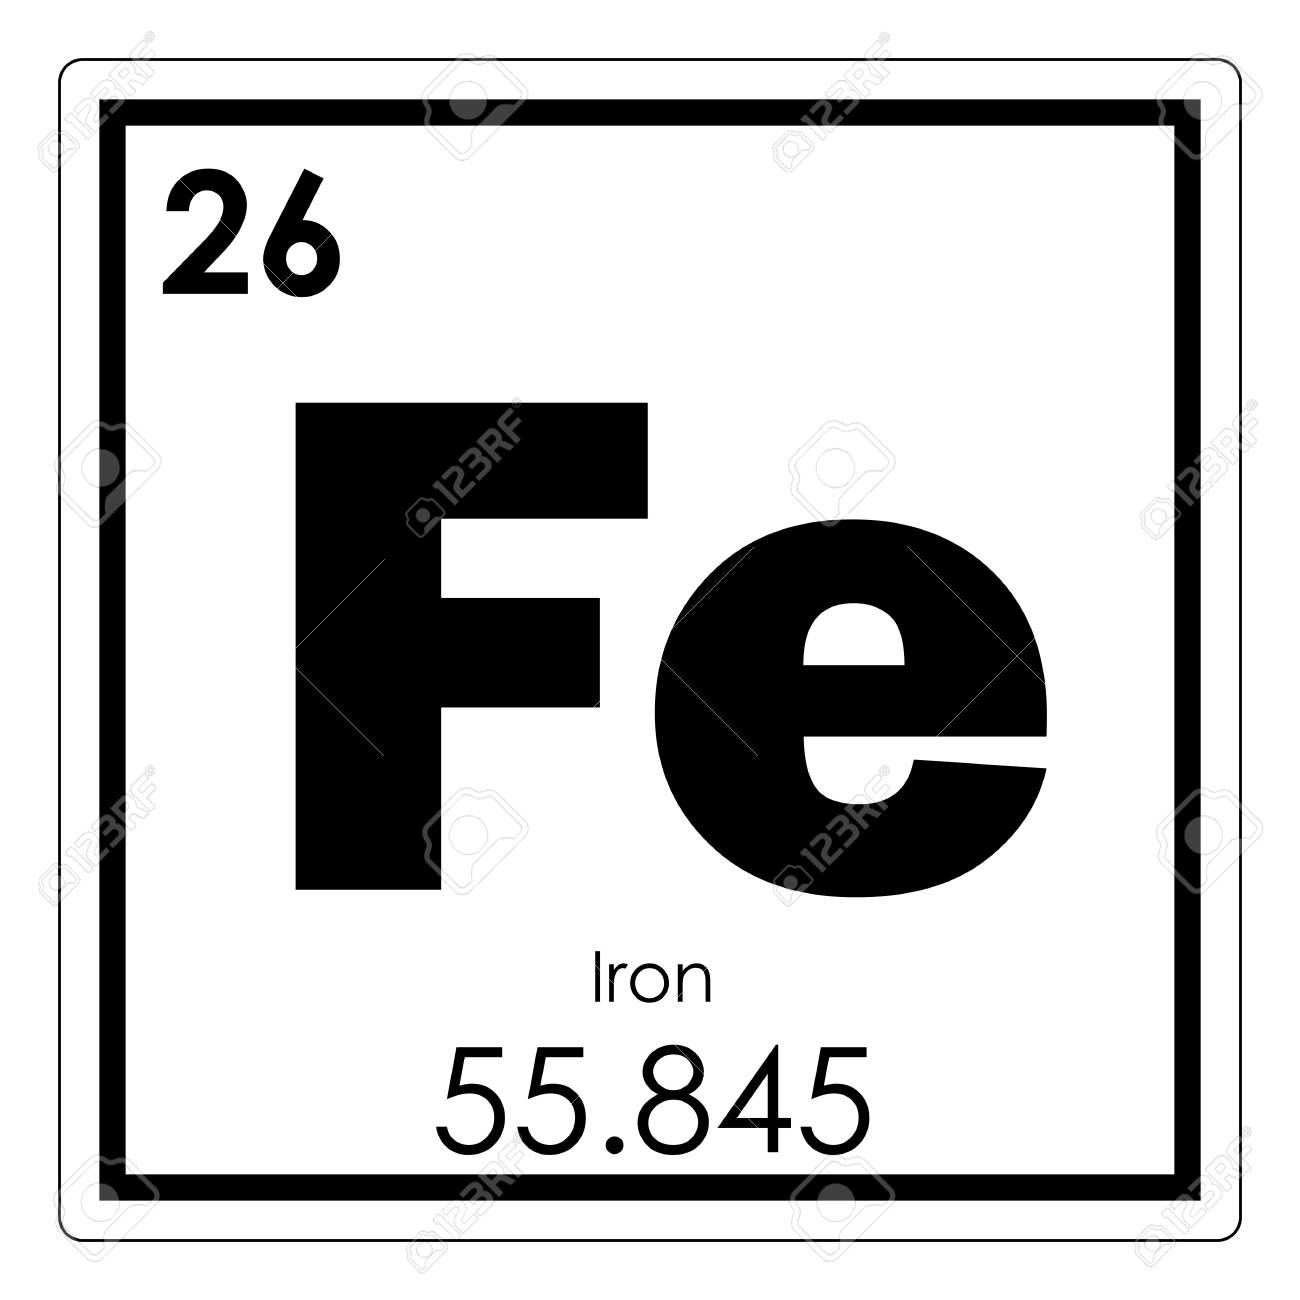 Iron chemical element periodic table science symbol stock photo iron chemical element periodic table science symbol stock photo 93554615 urtaz Images